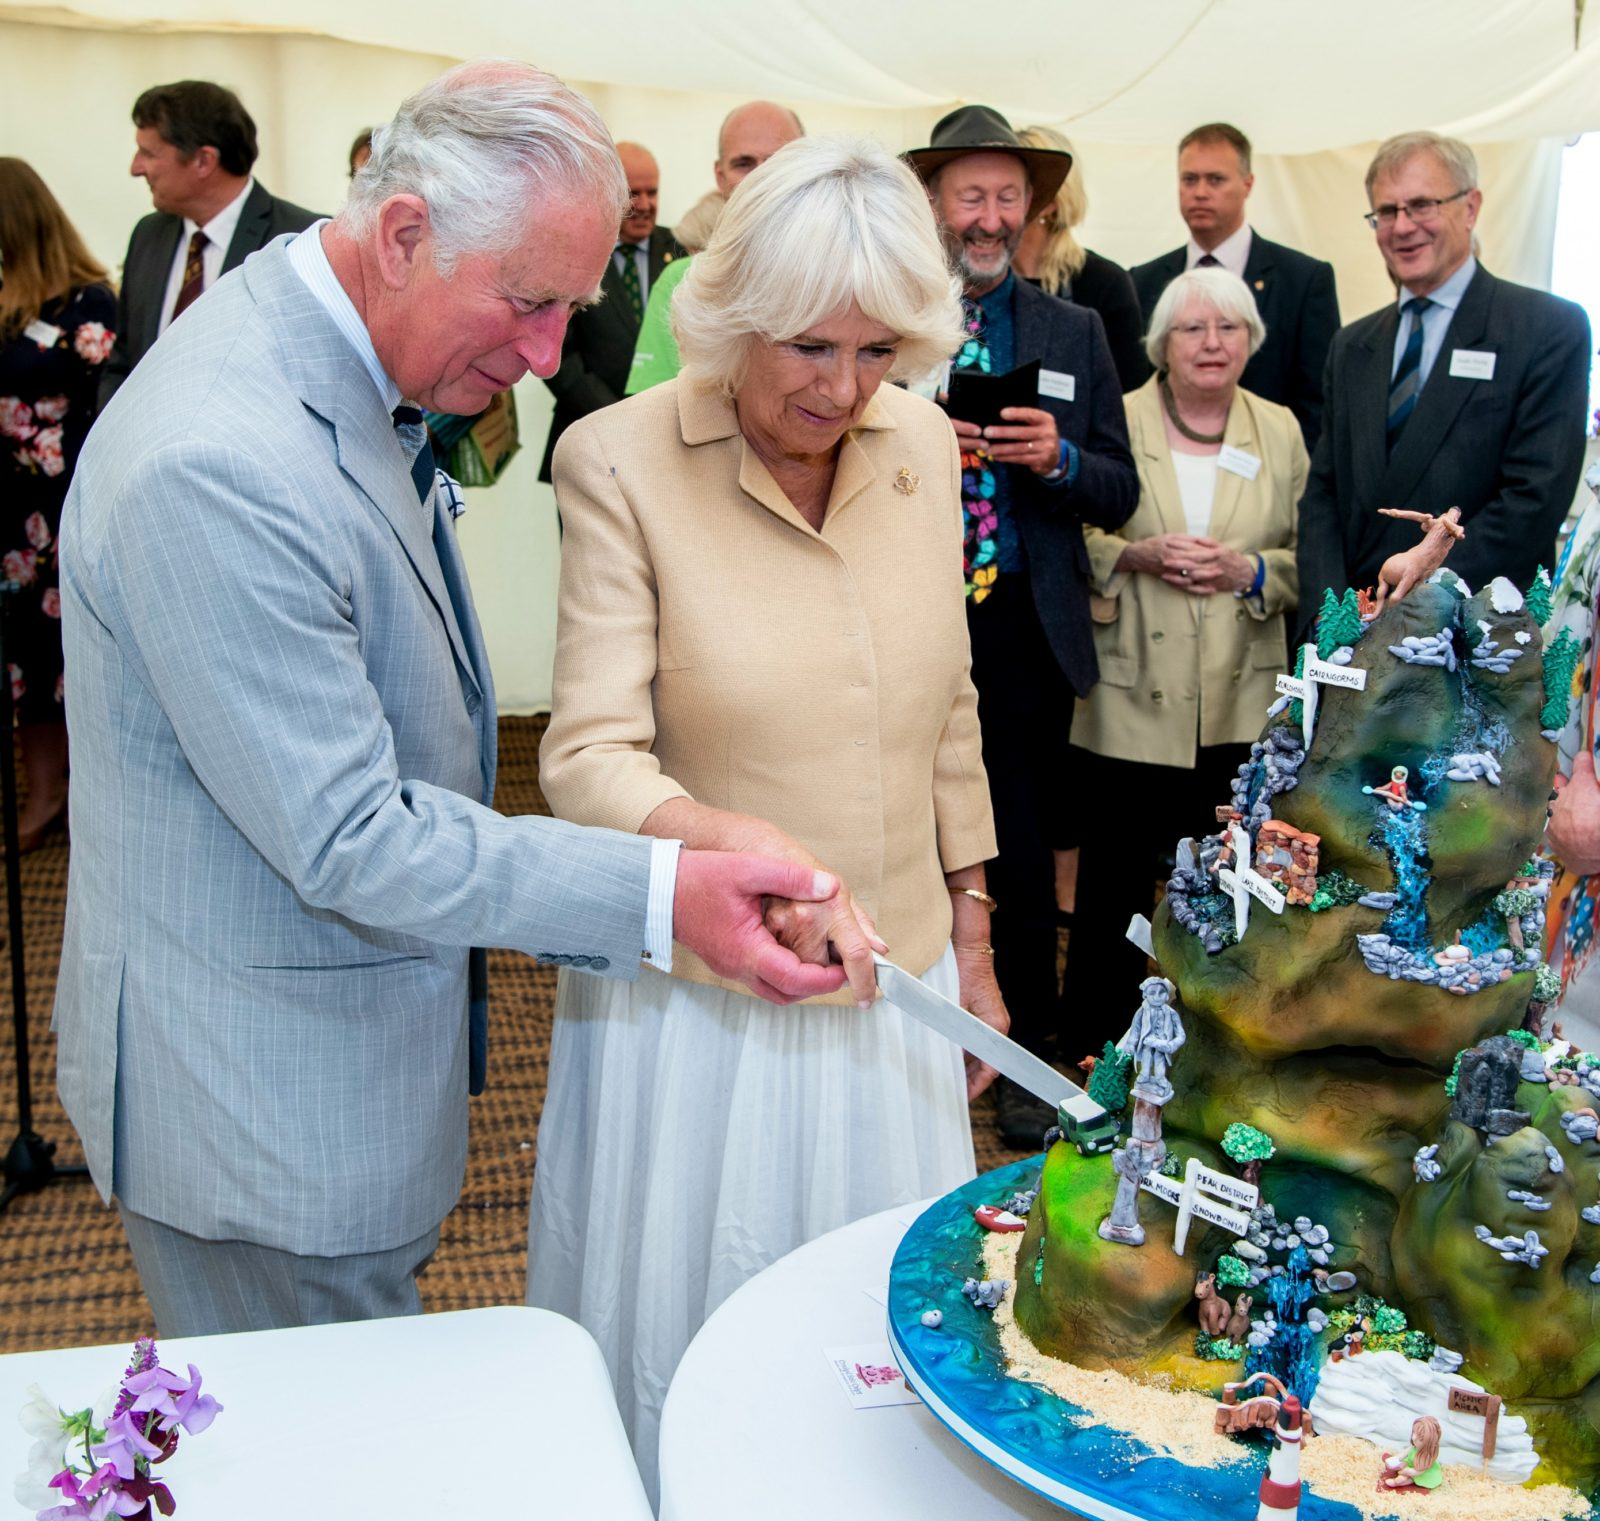 Charles and Camilla even cut the cake together. Source: Getty.